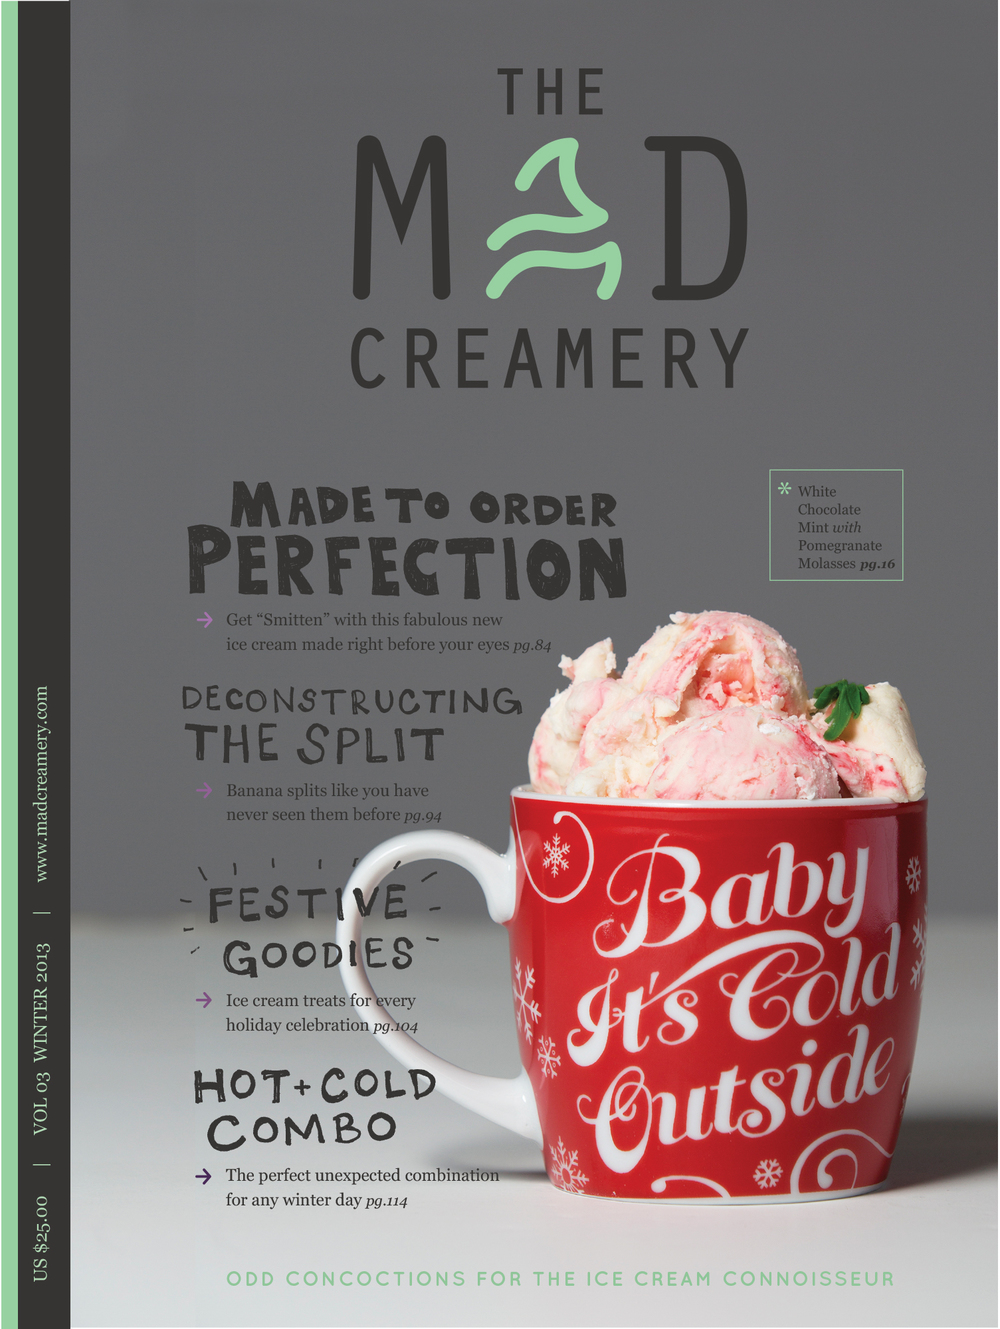 MadCreamery_Cover2.jpg